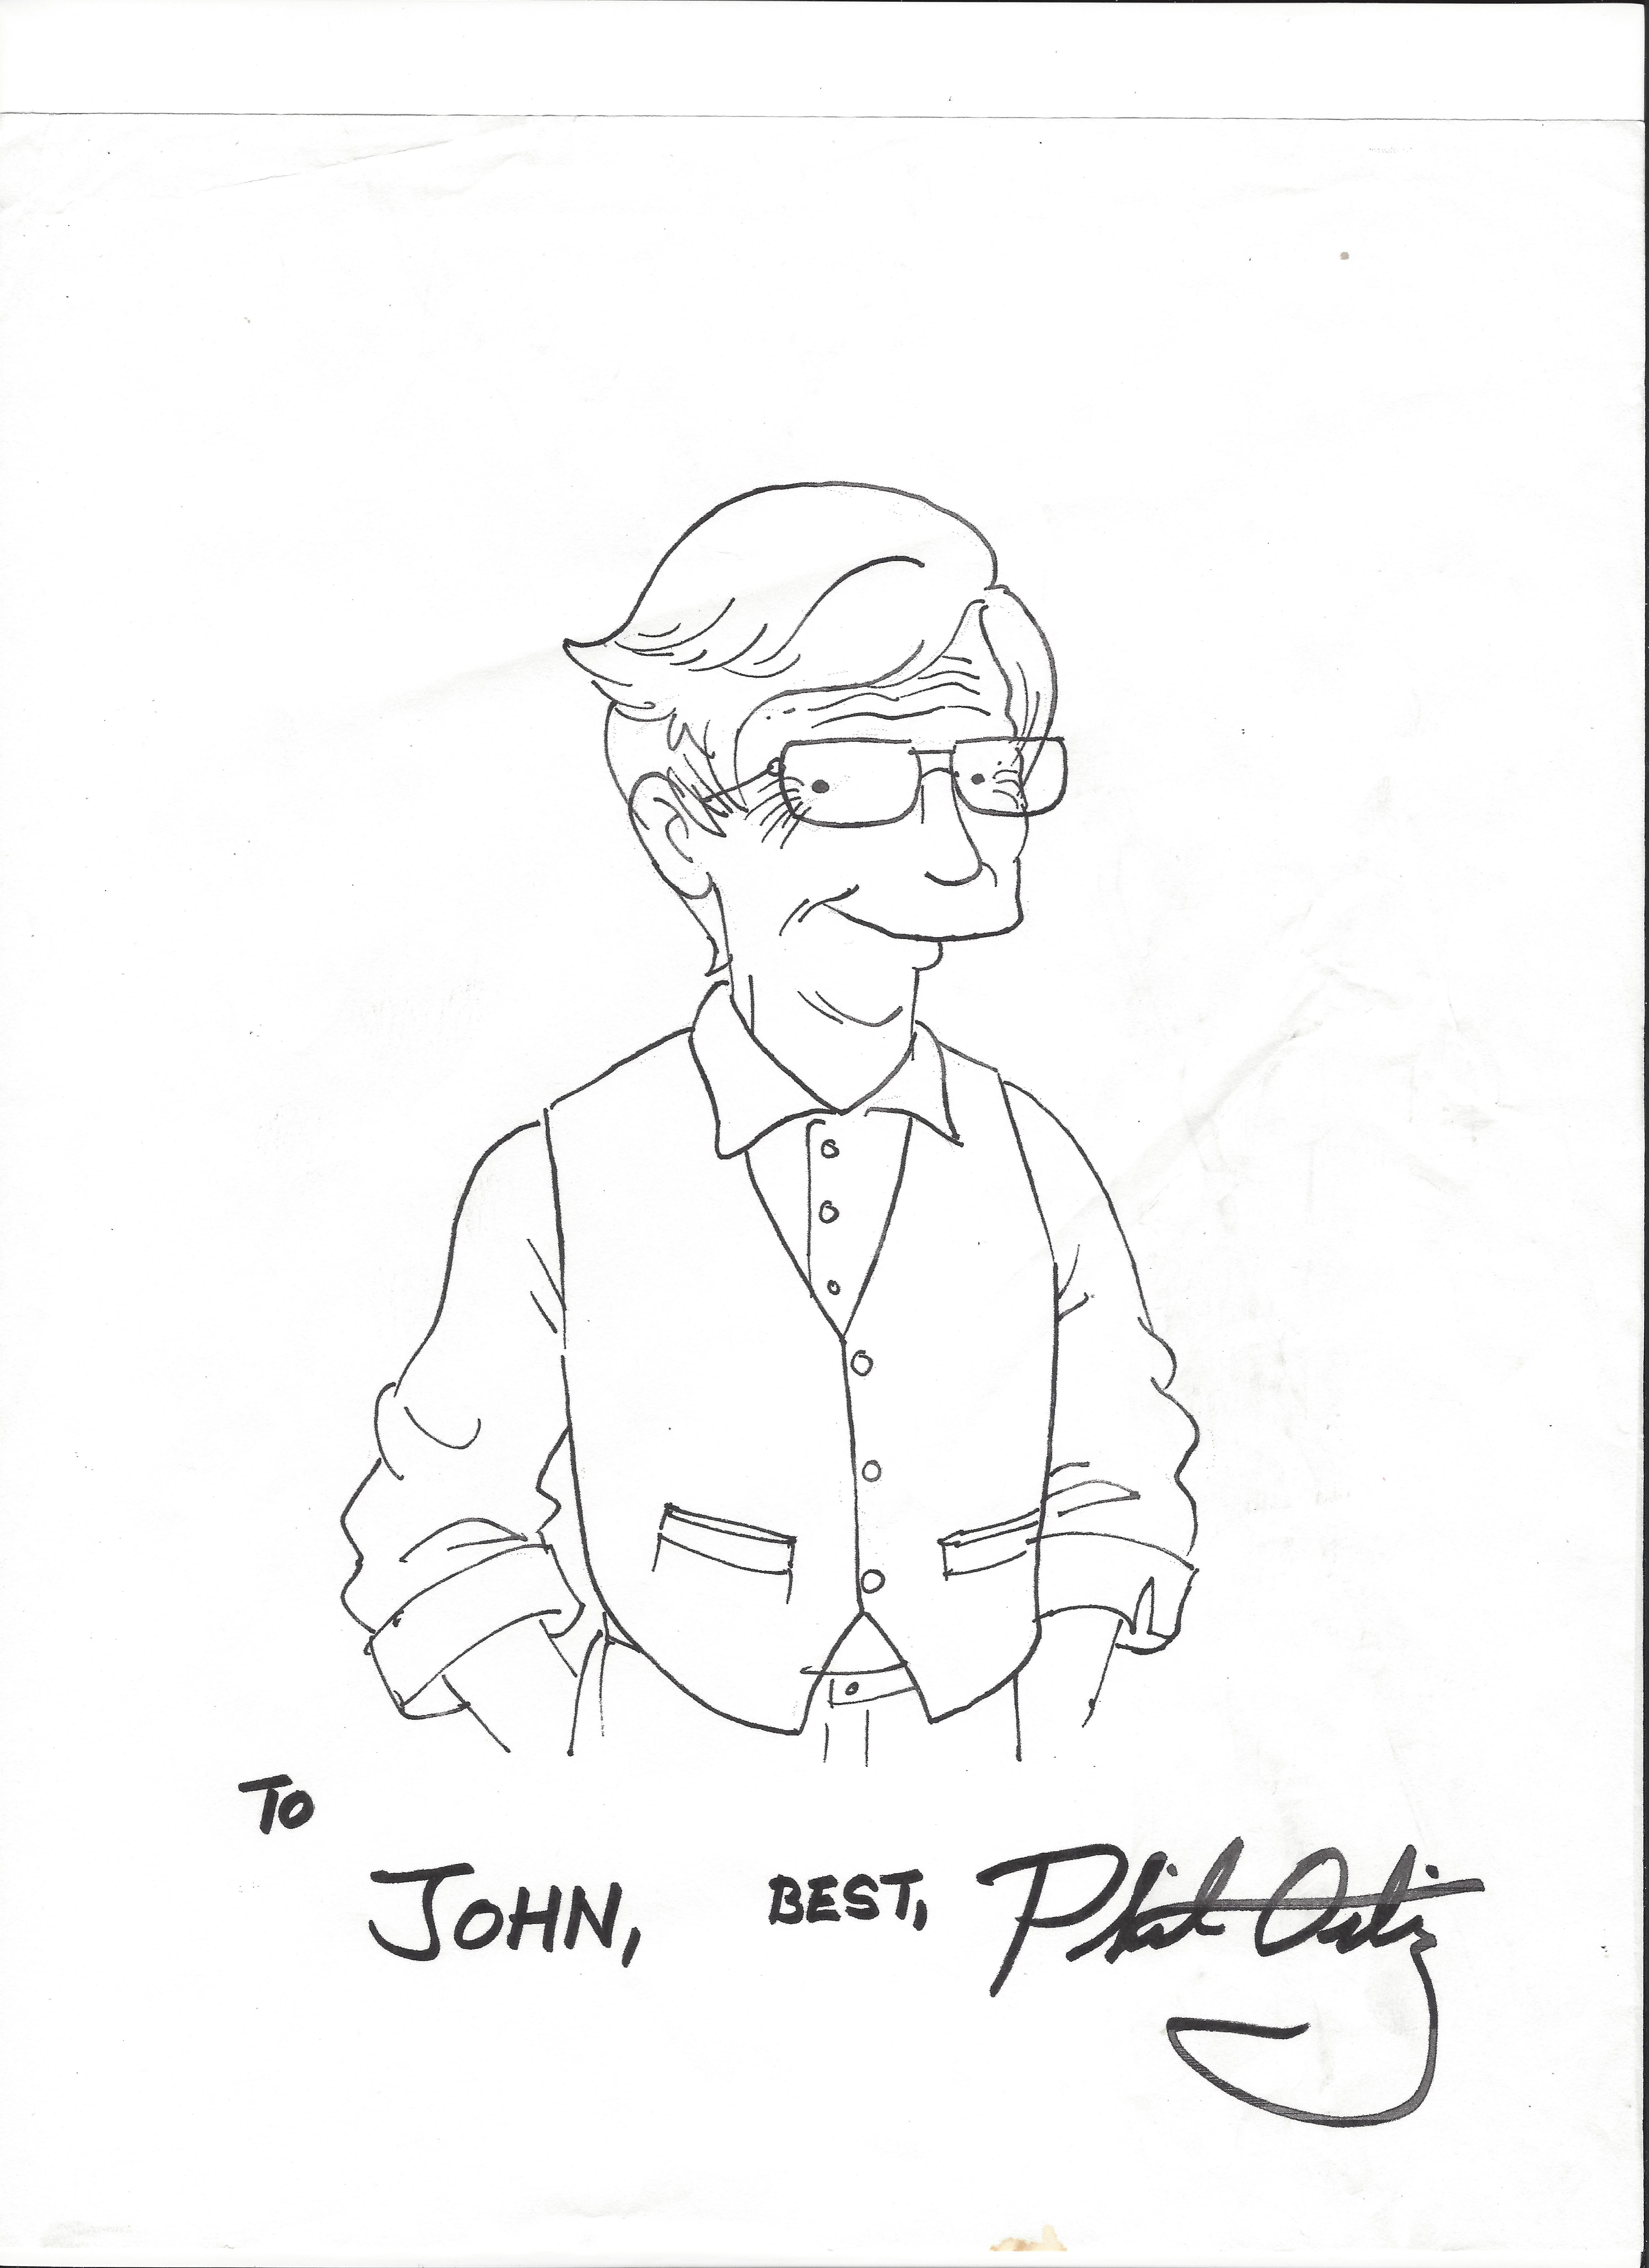 john as a simpsons character